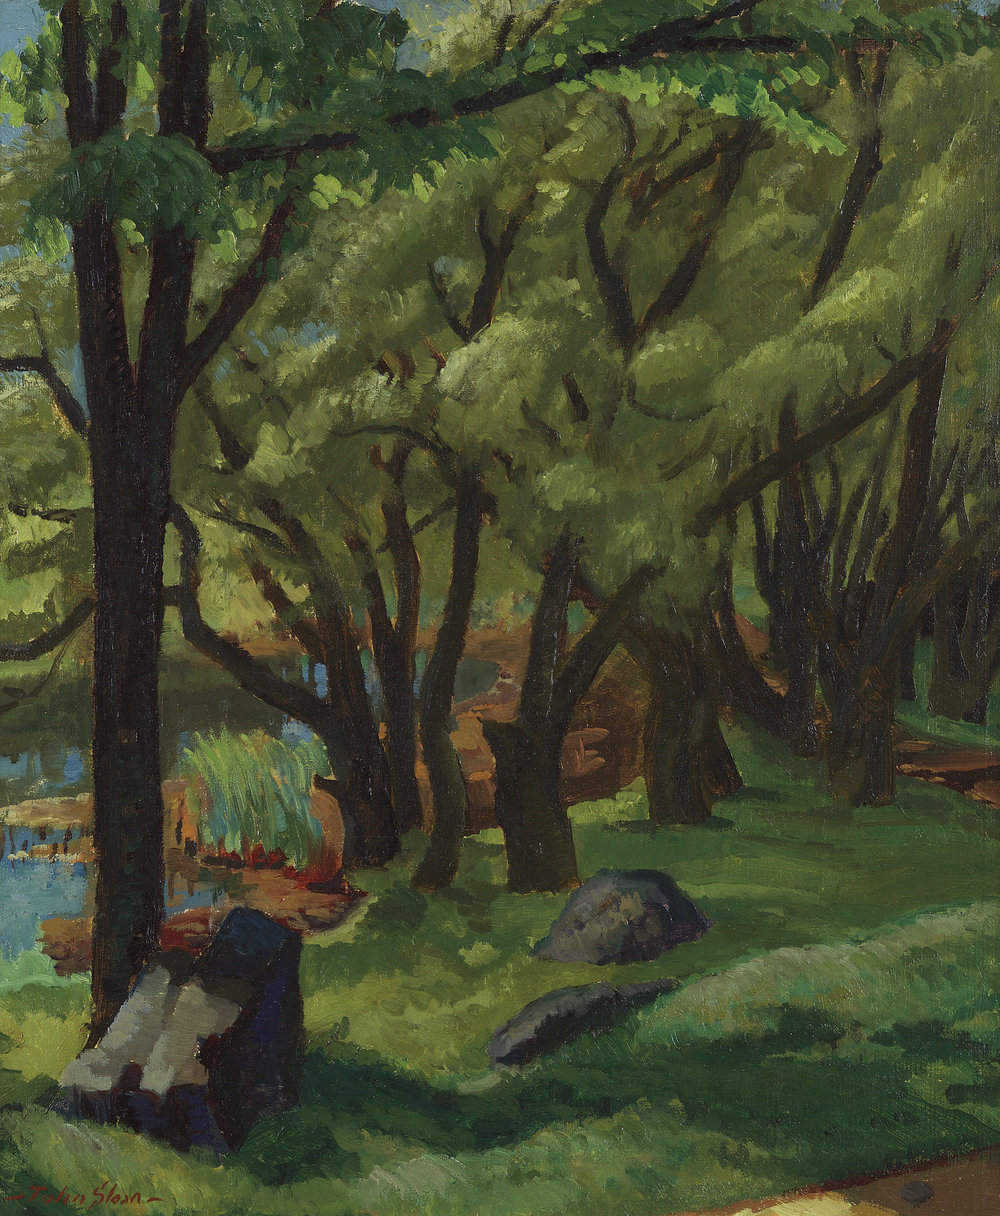 Painting of green field with willow trees